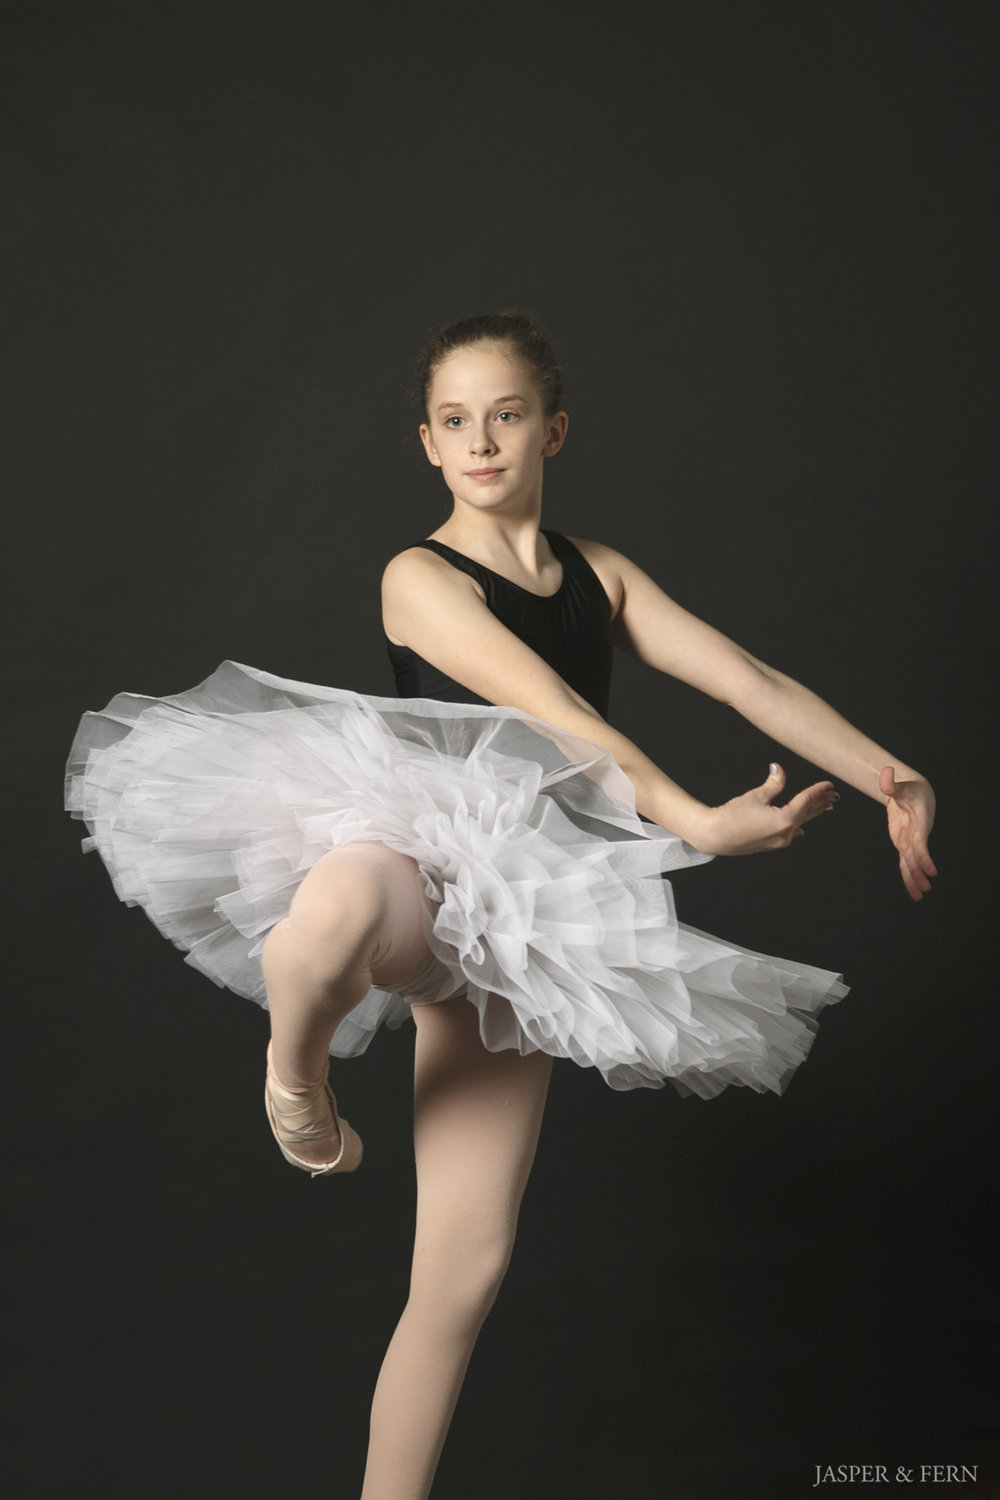 Dancer Portraits | Dance Photography | Black Leotard | Dancer bun hairstyle | dance routine | ballet leap | dramatic ballet portraits | dancer headshots | ballet shoes | dance shoes | Winston Salem Photographer | Jasper & Fern | ballerina | pirouette